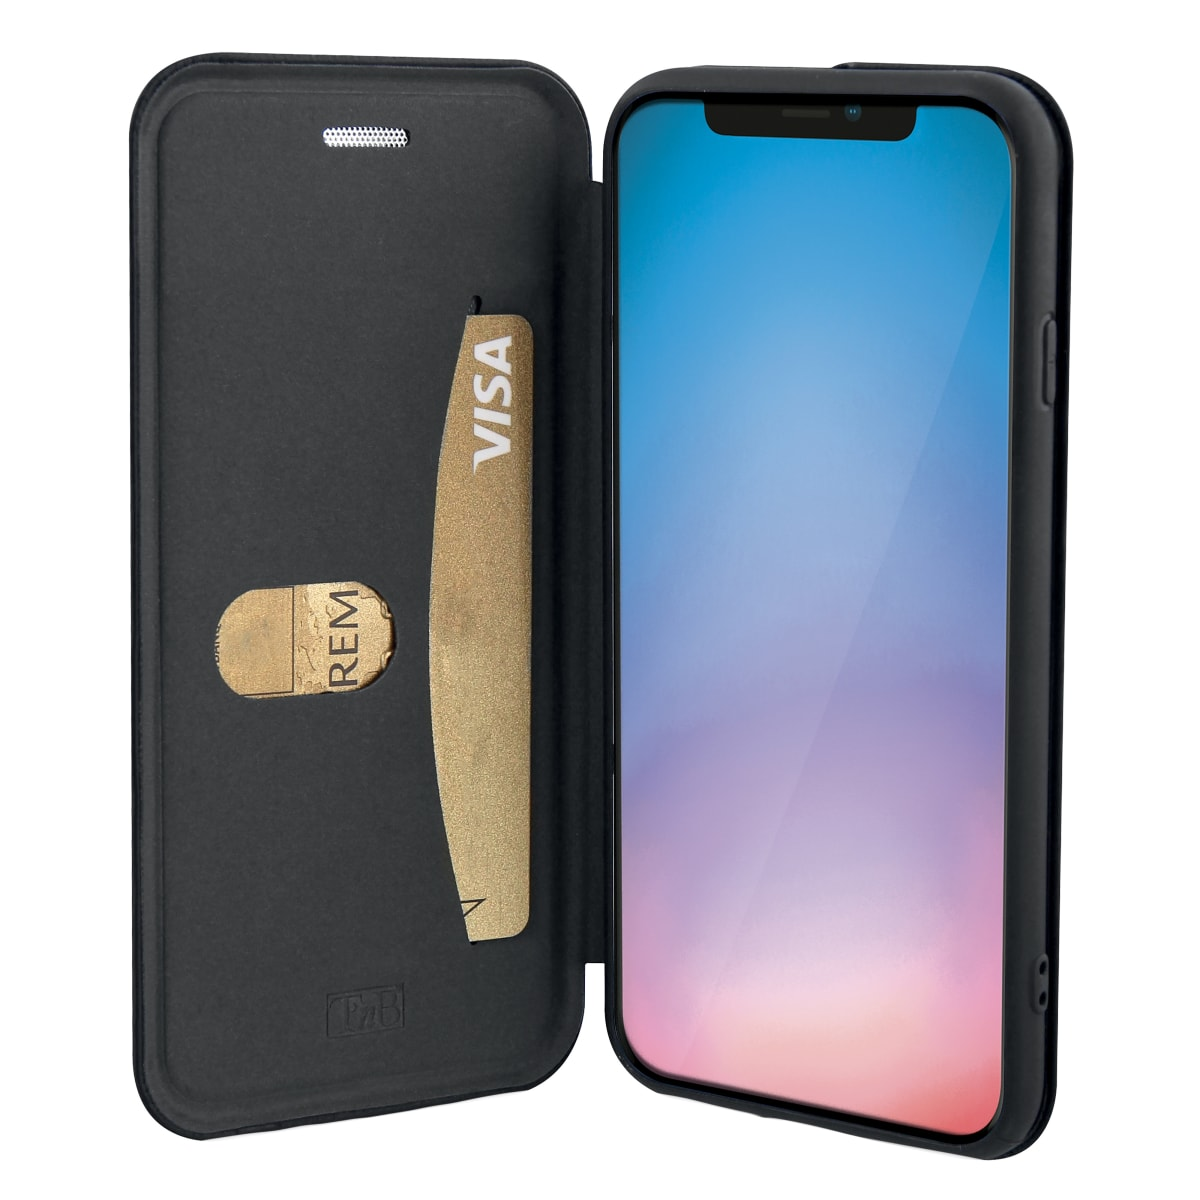 Premium folio case for iPhone 11 Pro Max.